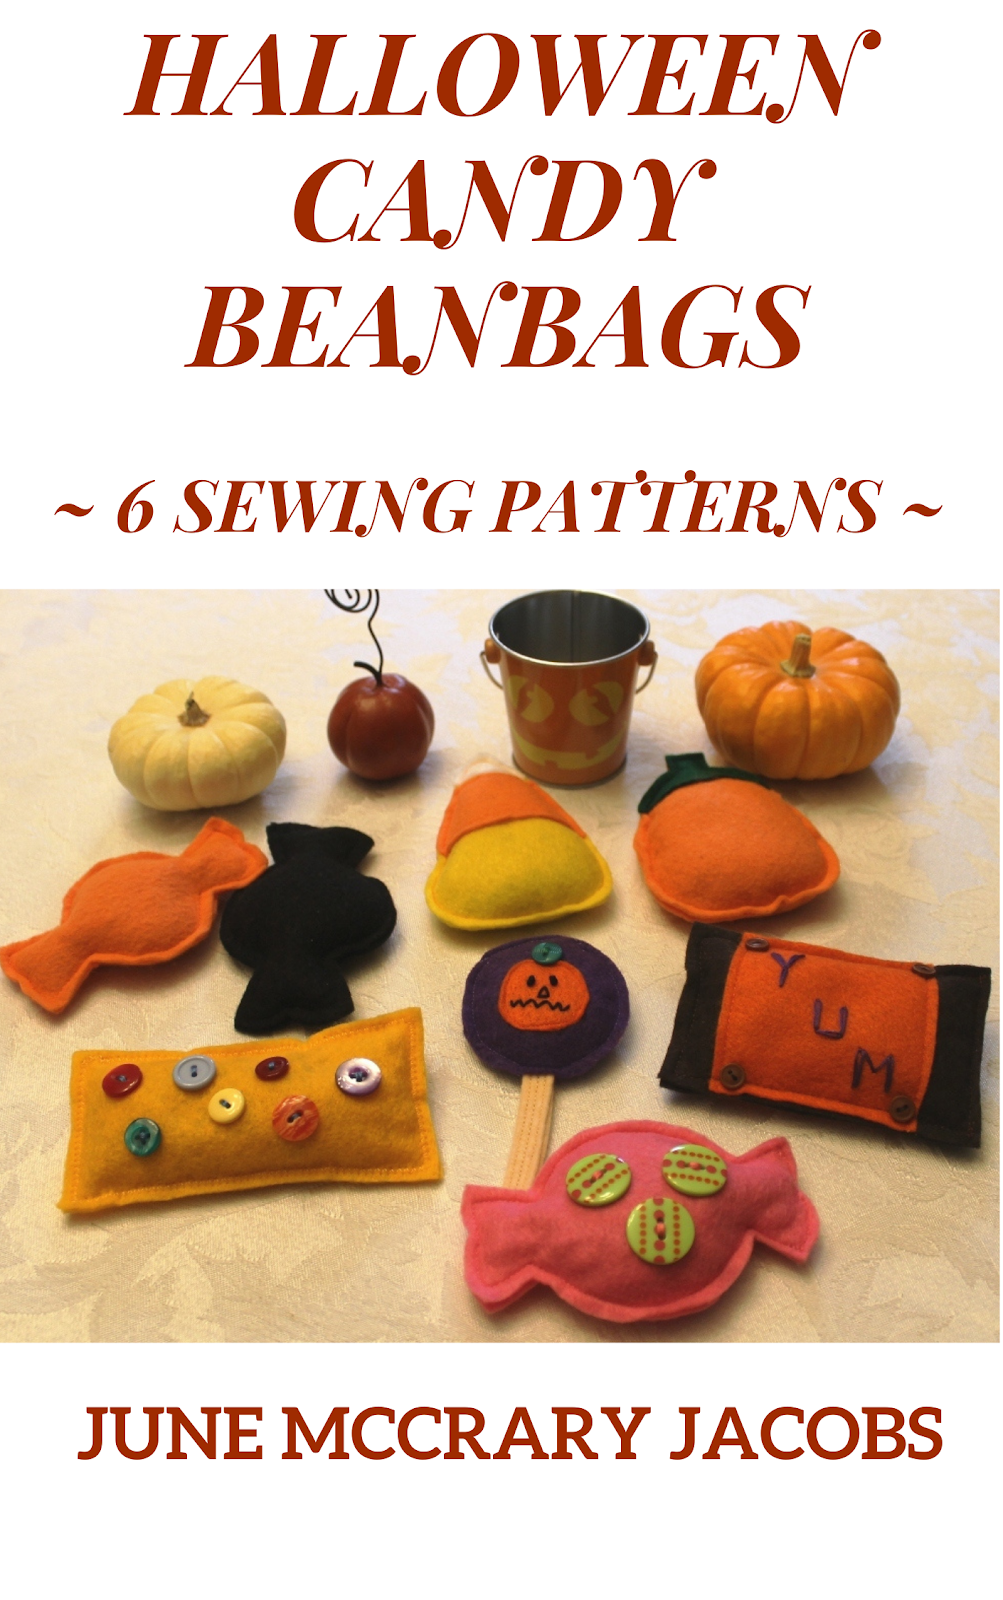 FIND MY 'HALLOWEEN CANDY BEANBAGS' SEWING PATTERN BOOK ON AMAZON!